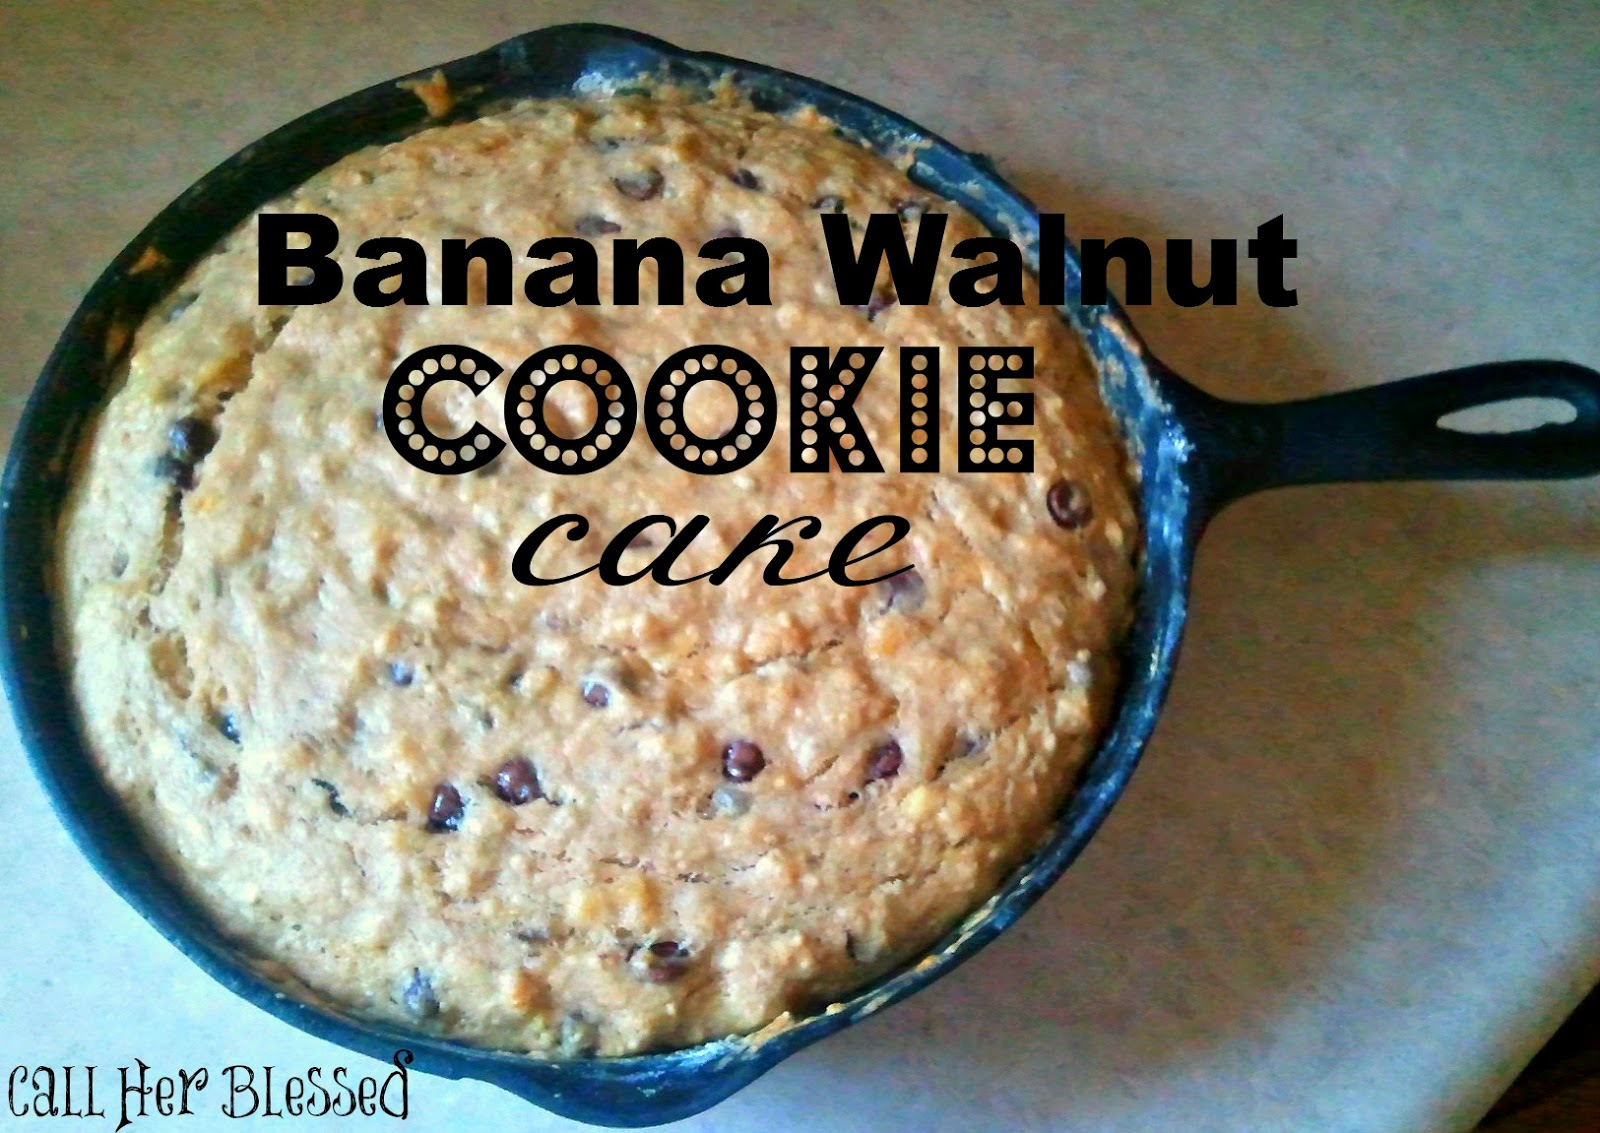 Call Her Blessed: Banana Walnut Cookie Cake